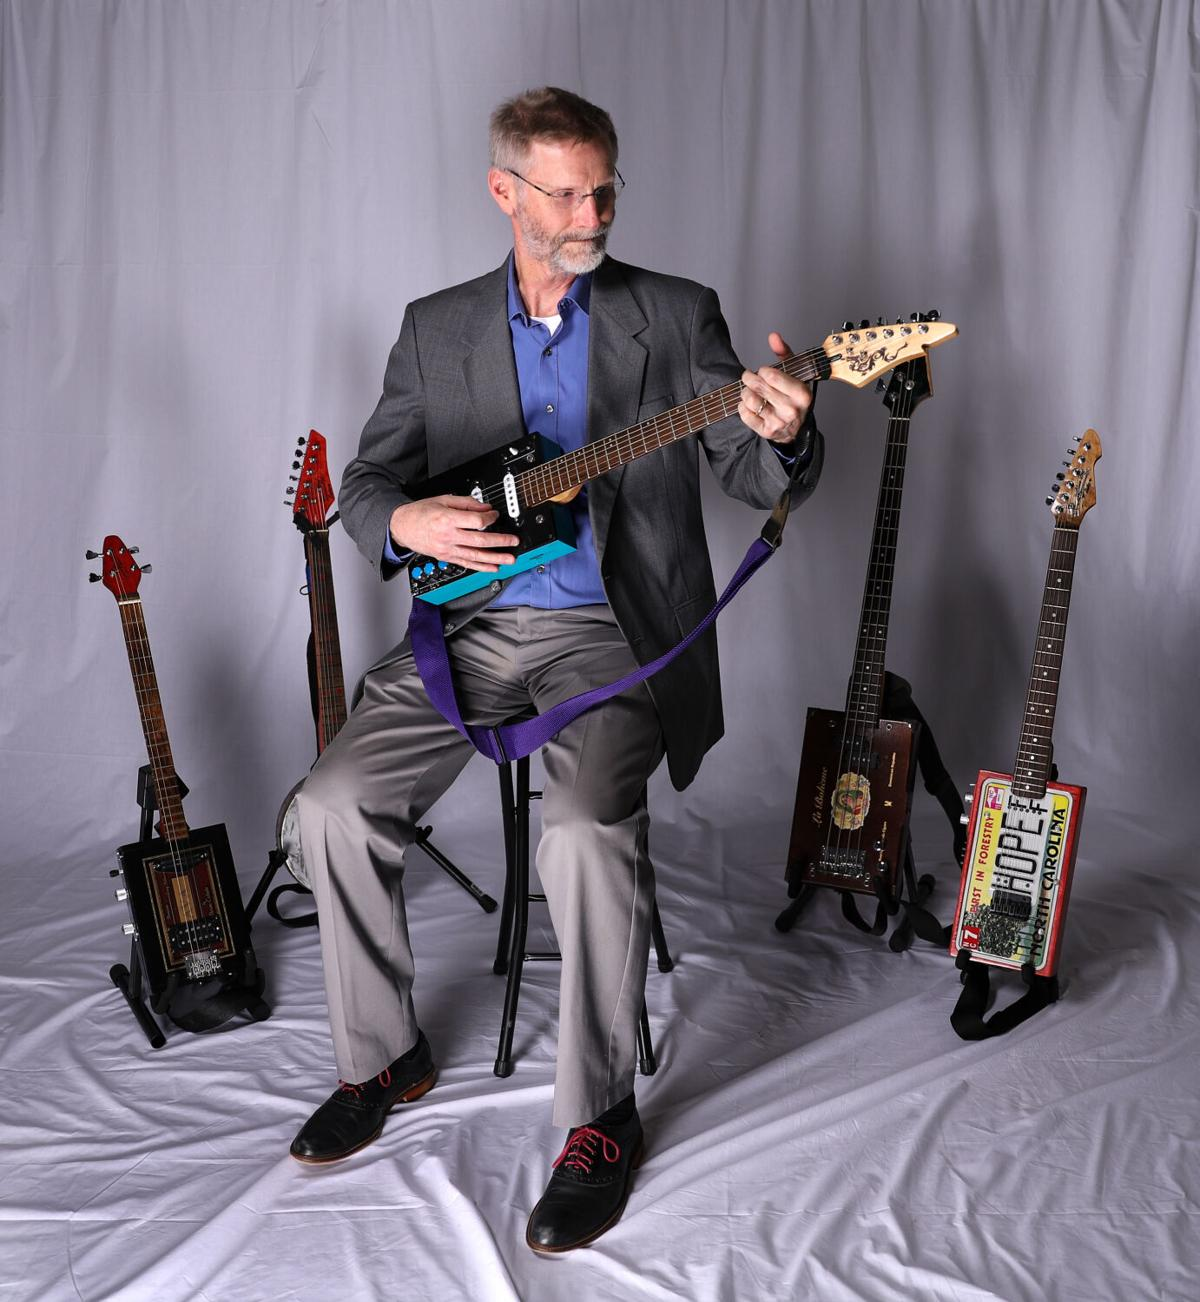 UTA professor builds, plays guitars crafted from cigar boxes in his spare time